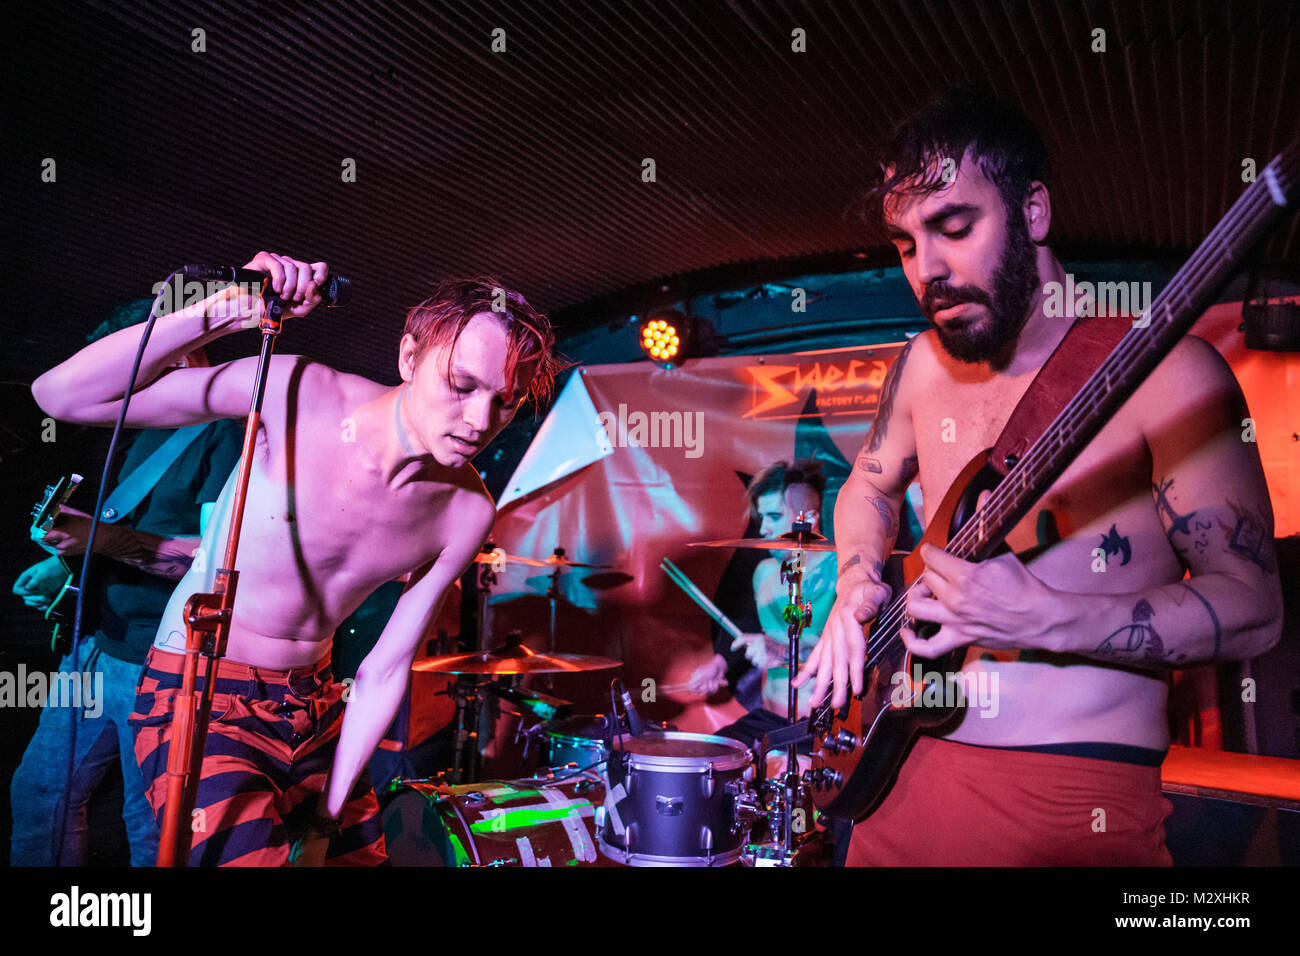 Barcelona, Spain. February 2, 2018. Concert by Kitai in Sidecar. Photographer: © Aitor Rodero. - Stock Image